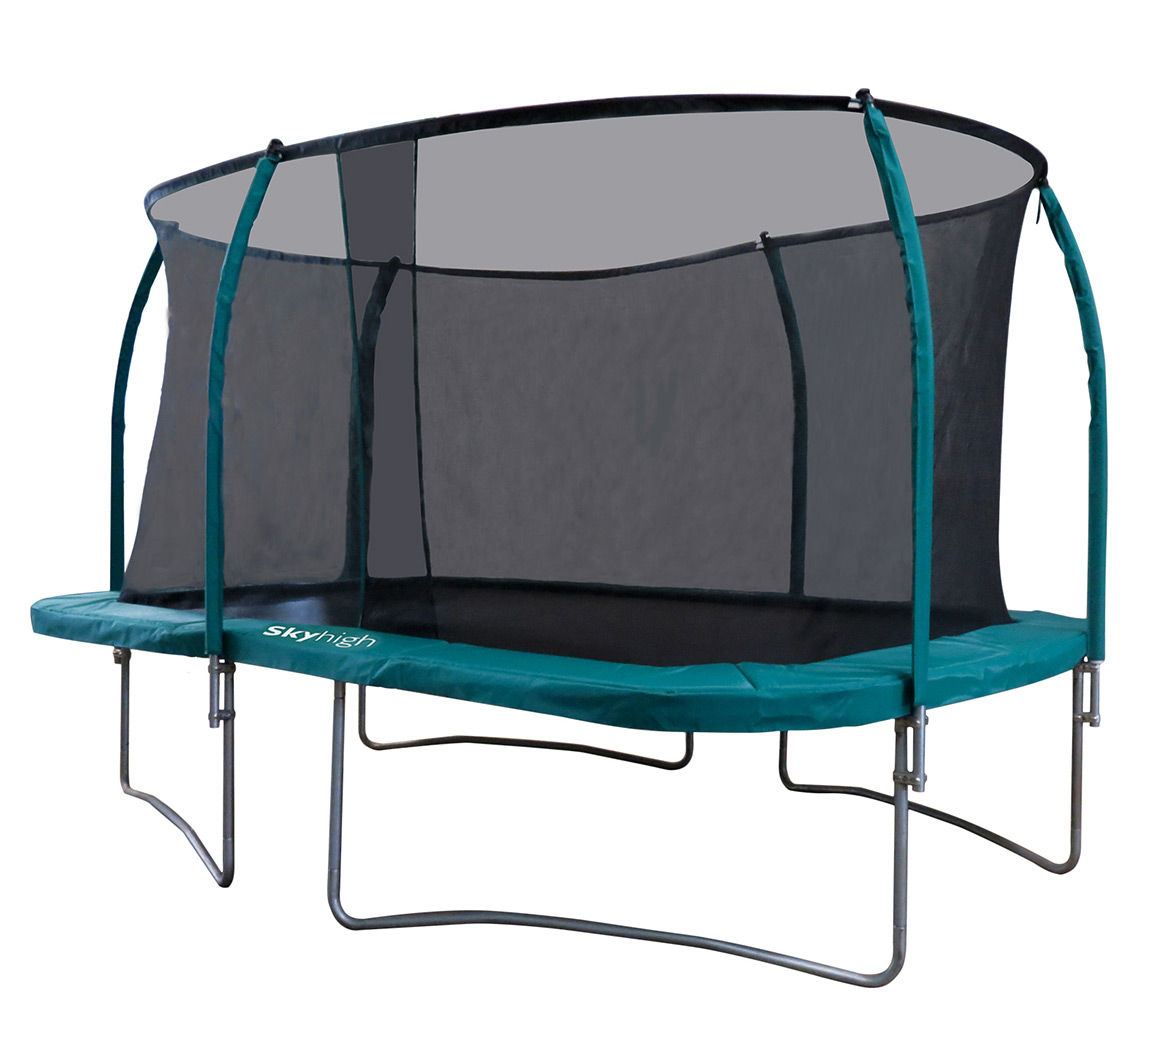 10ft X 14ft Skyhigh Rectangular Trampoline And Enclosure